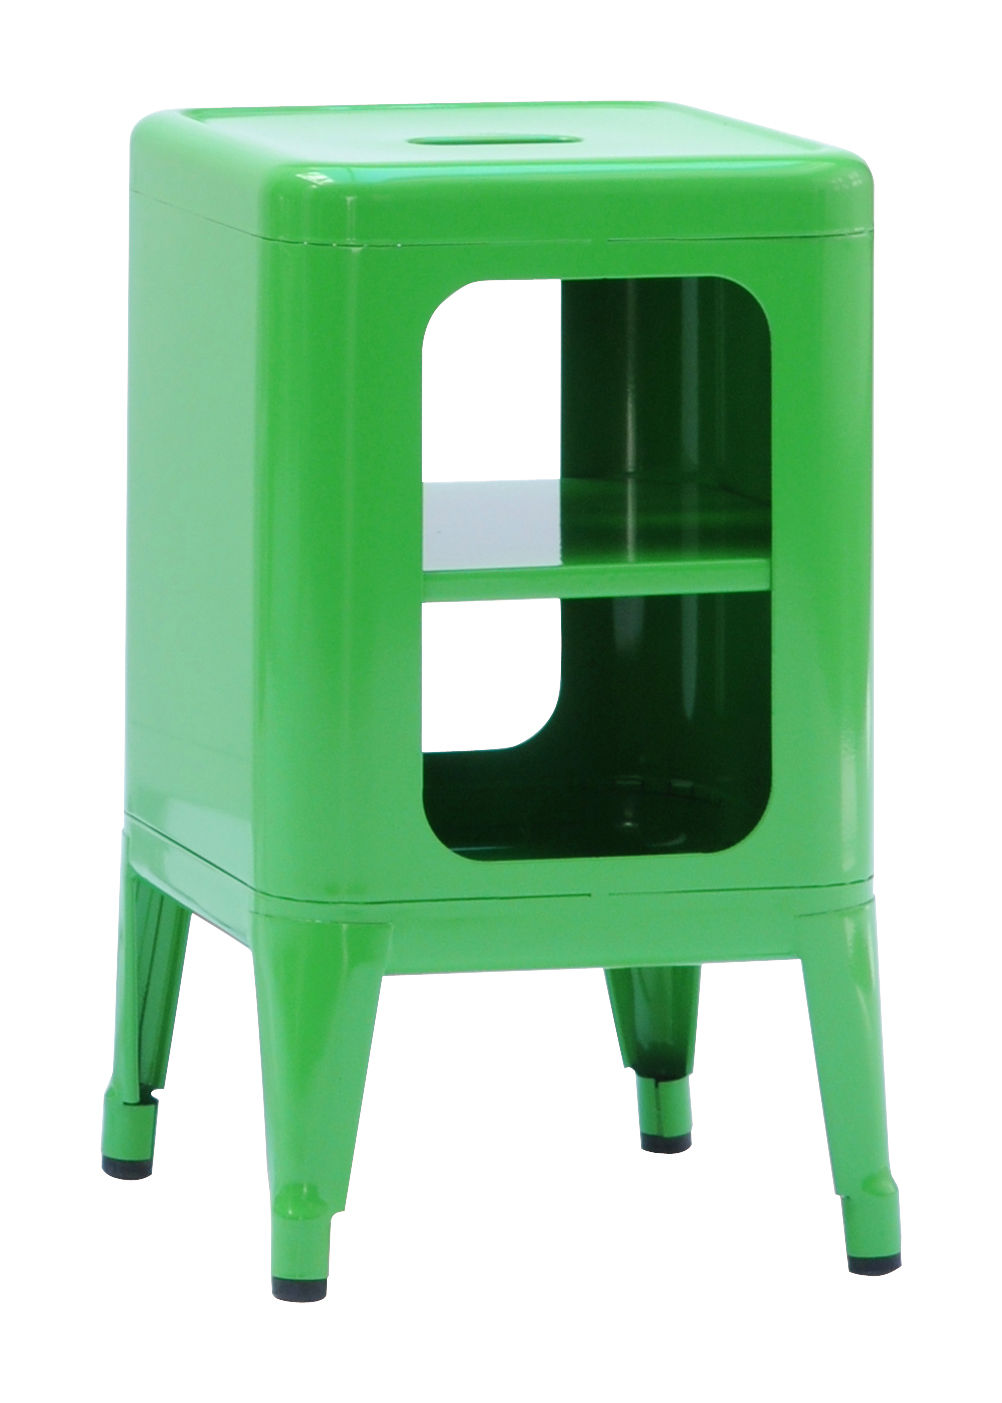 meuble de rangement acier laqu h 50 cm vert tolix. Black Bedroom Furniture Sets. Home Design Ideas